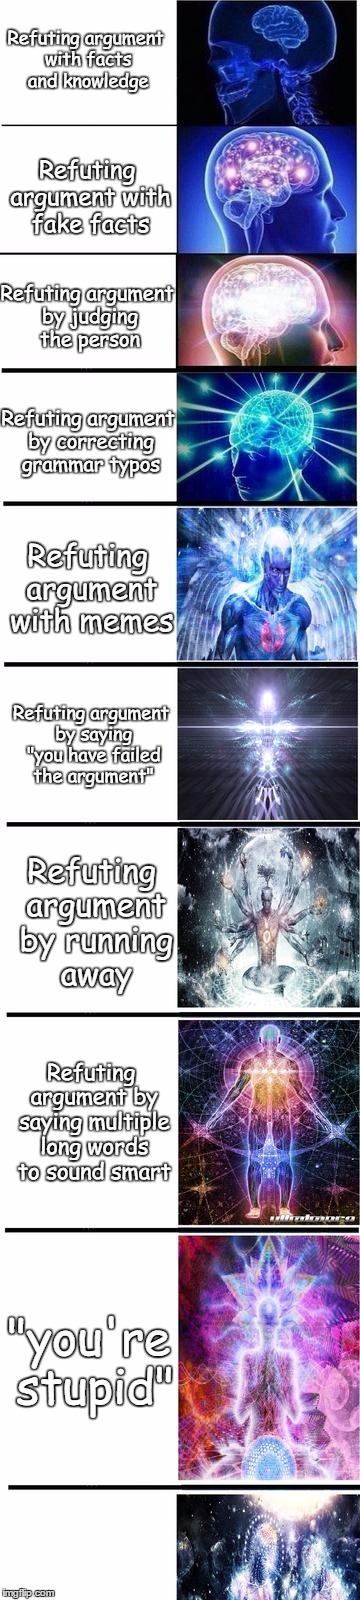 how to win an argument | Refuting argument with facts and knowledge Refuting argument with fake facts Refuting argument by judging the person Refuting argument by co | image tagged in expanding brain | made w/ Imgflip meme maker